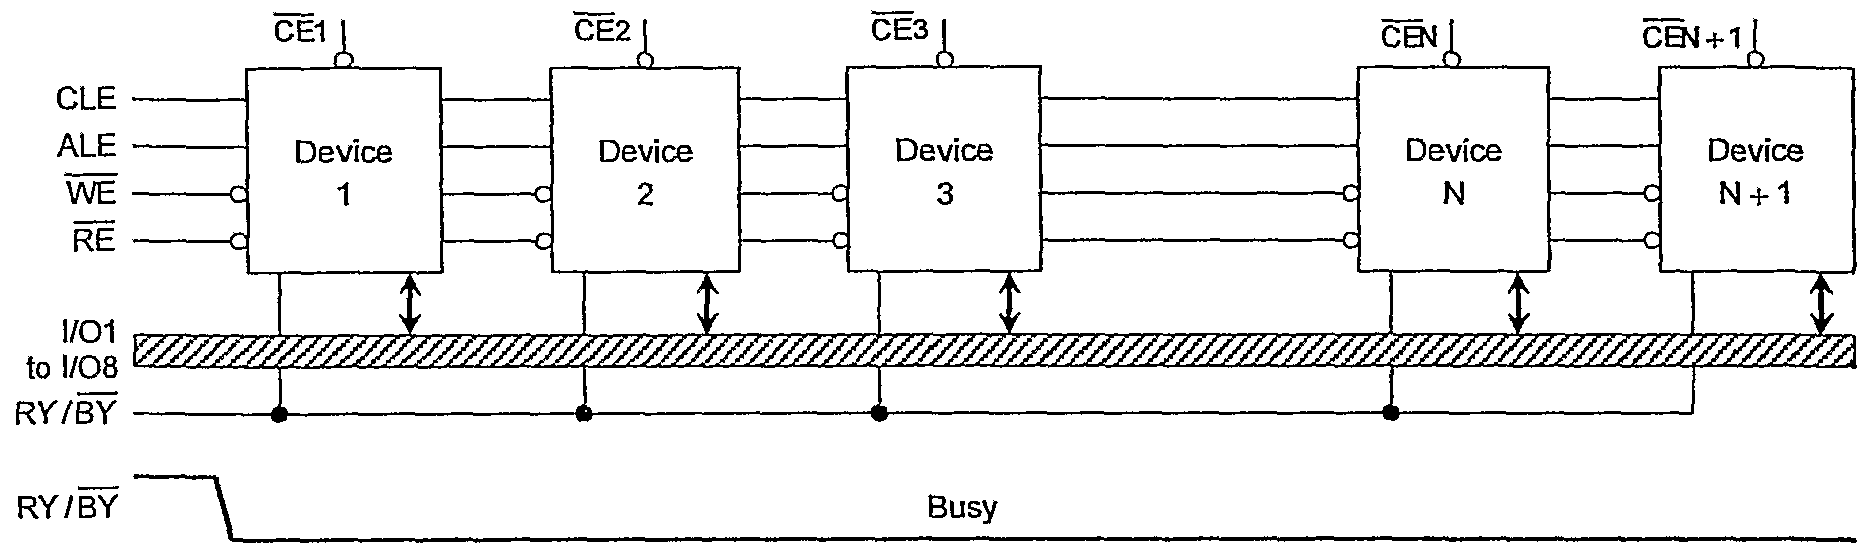 Wo2008023368a2 A Nand Flash Memory Controller Exporting Logical 800 Mobile Phone Circuit Principle Diagram Controlcircuit Figure Imgf000049 0001